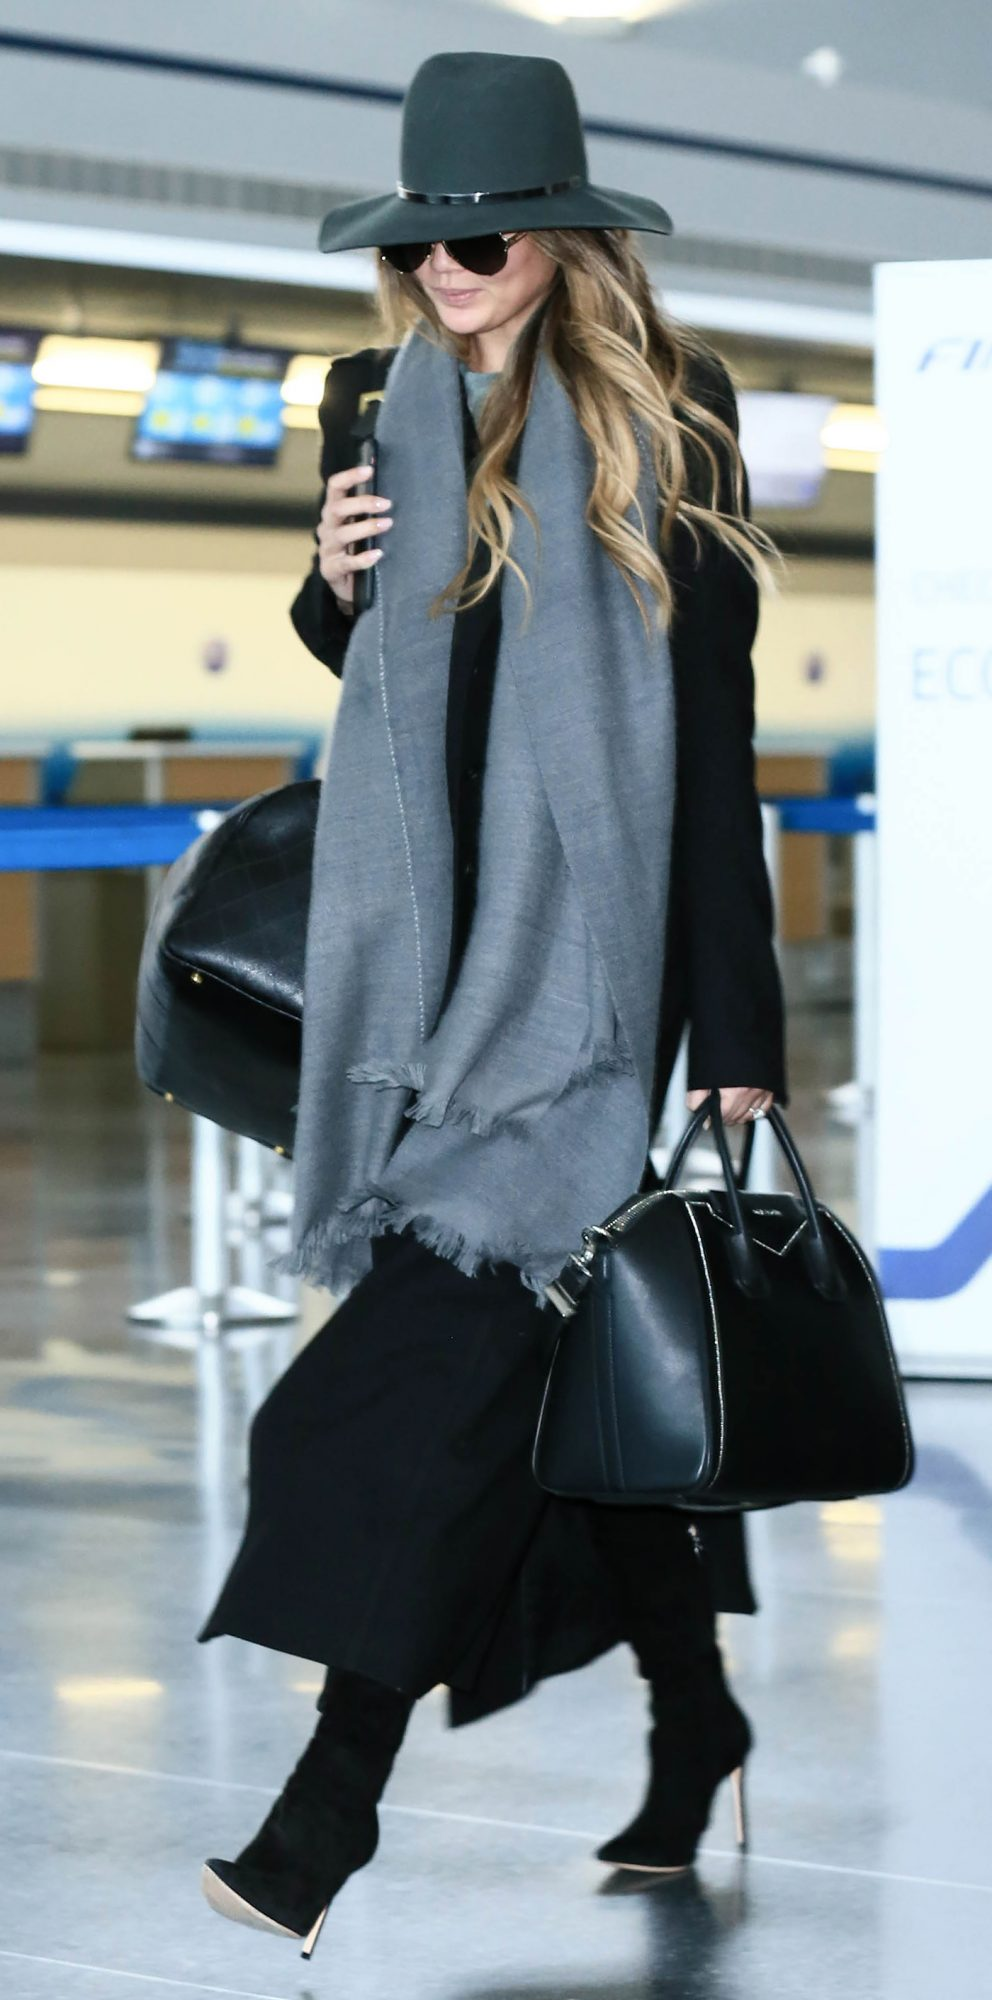 celebrityinspired outfits to wear on a plane instylecom